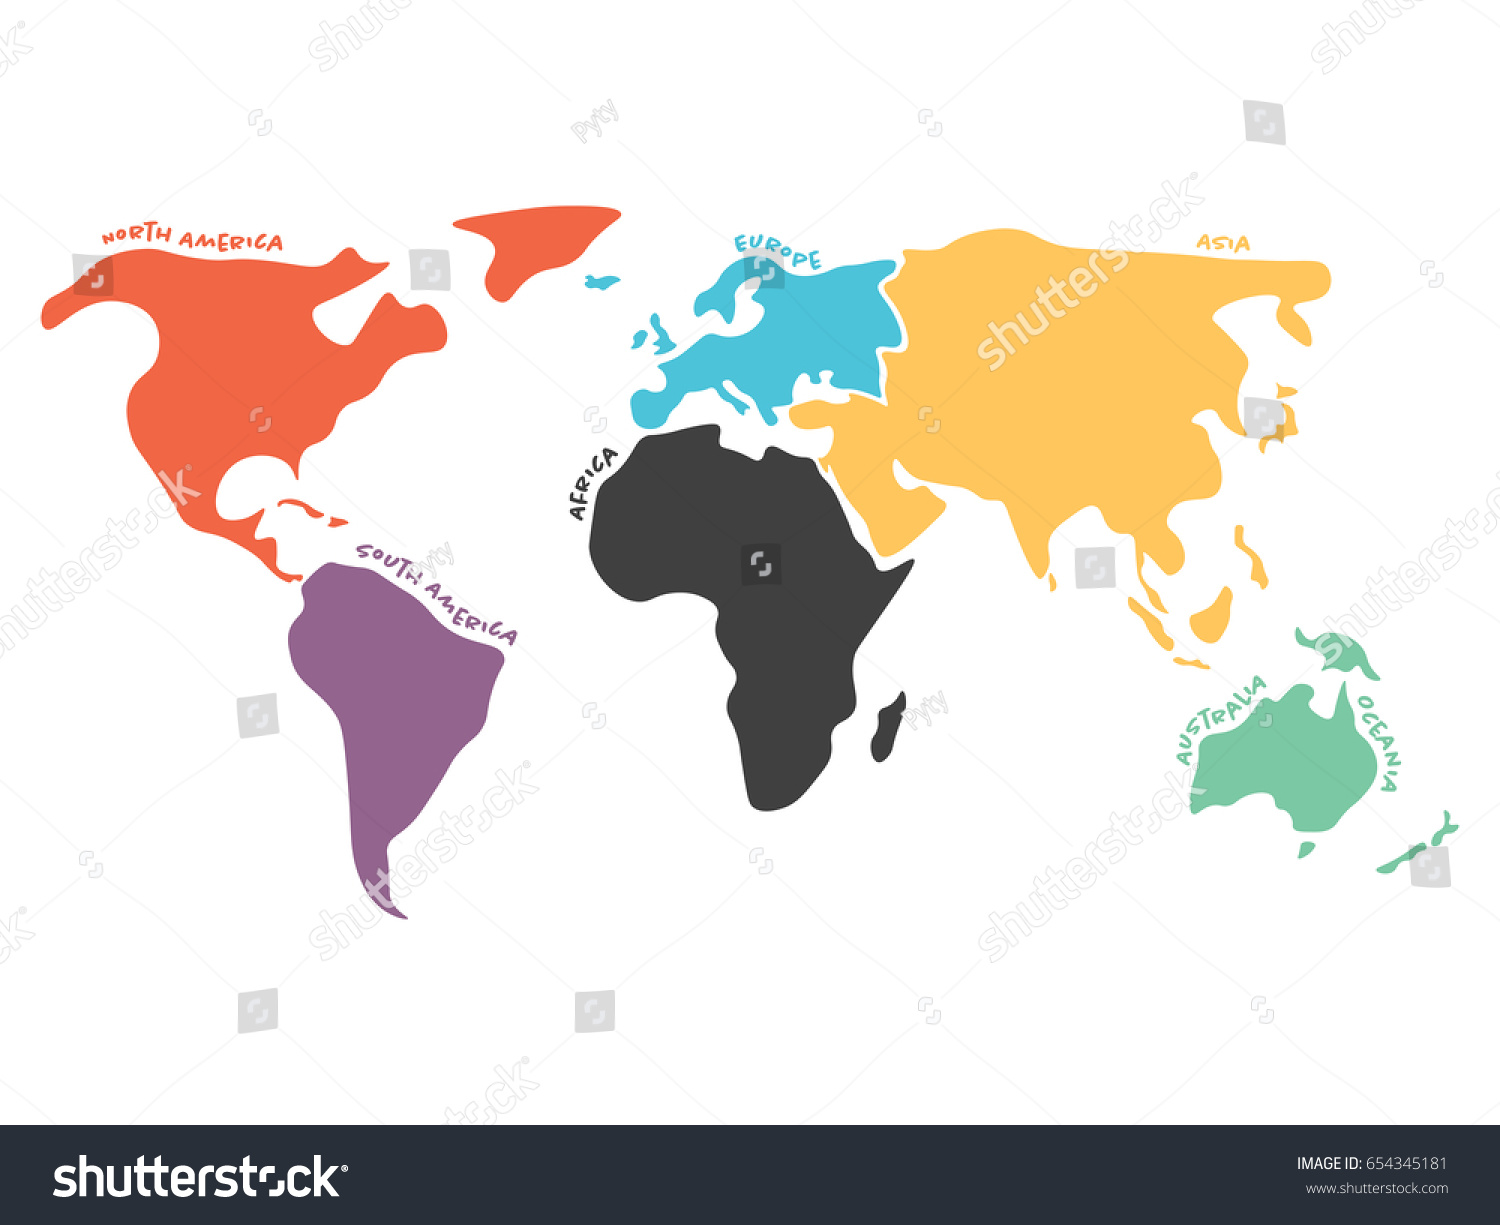 Multicolored world map divided six continents vectores en stock multicolored world map divided to six continents in different colors north america south america gumiabroncs Image collections